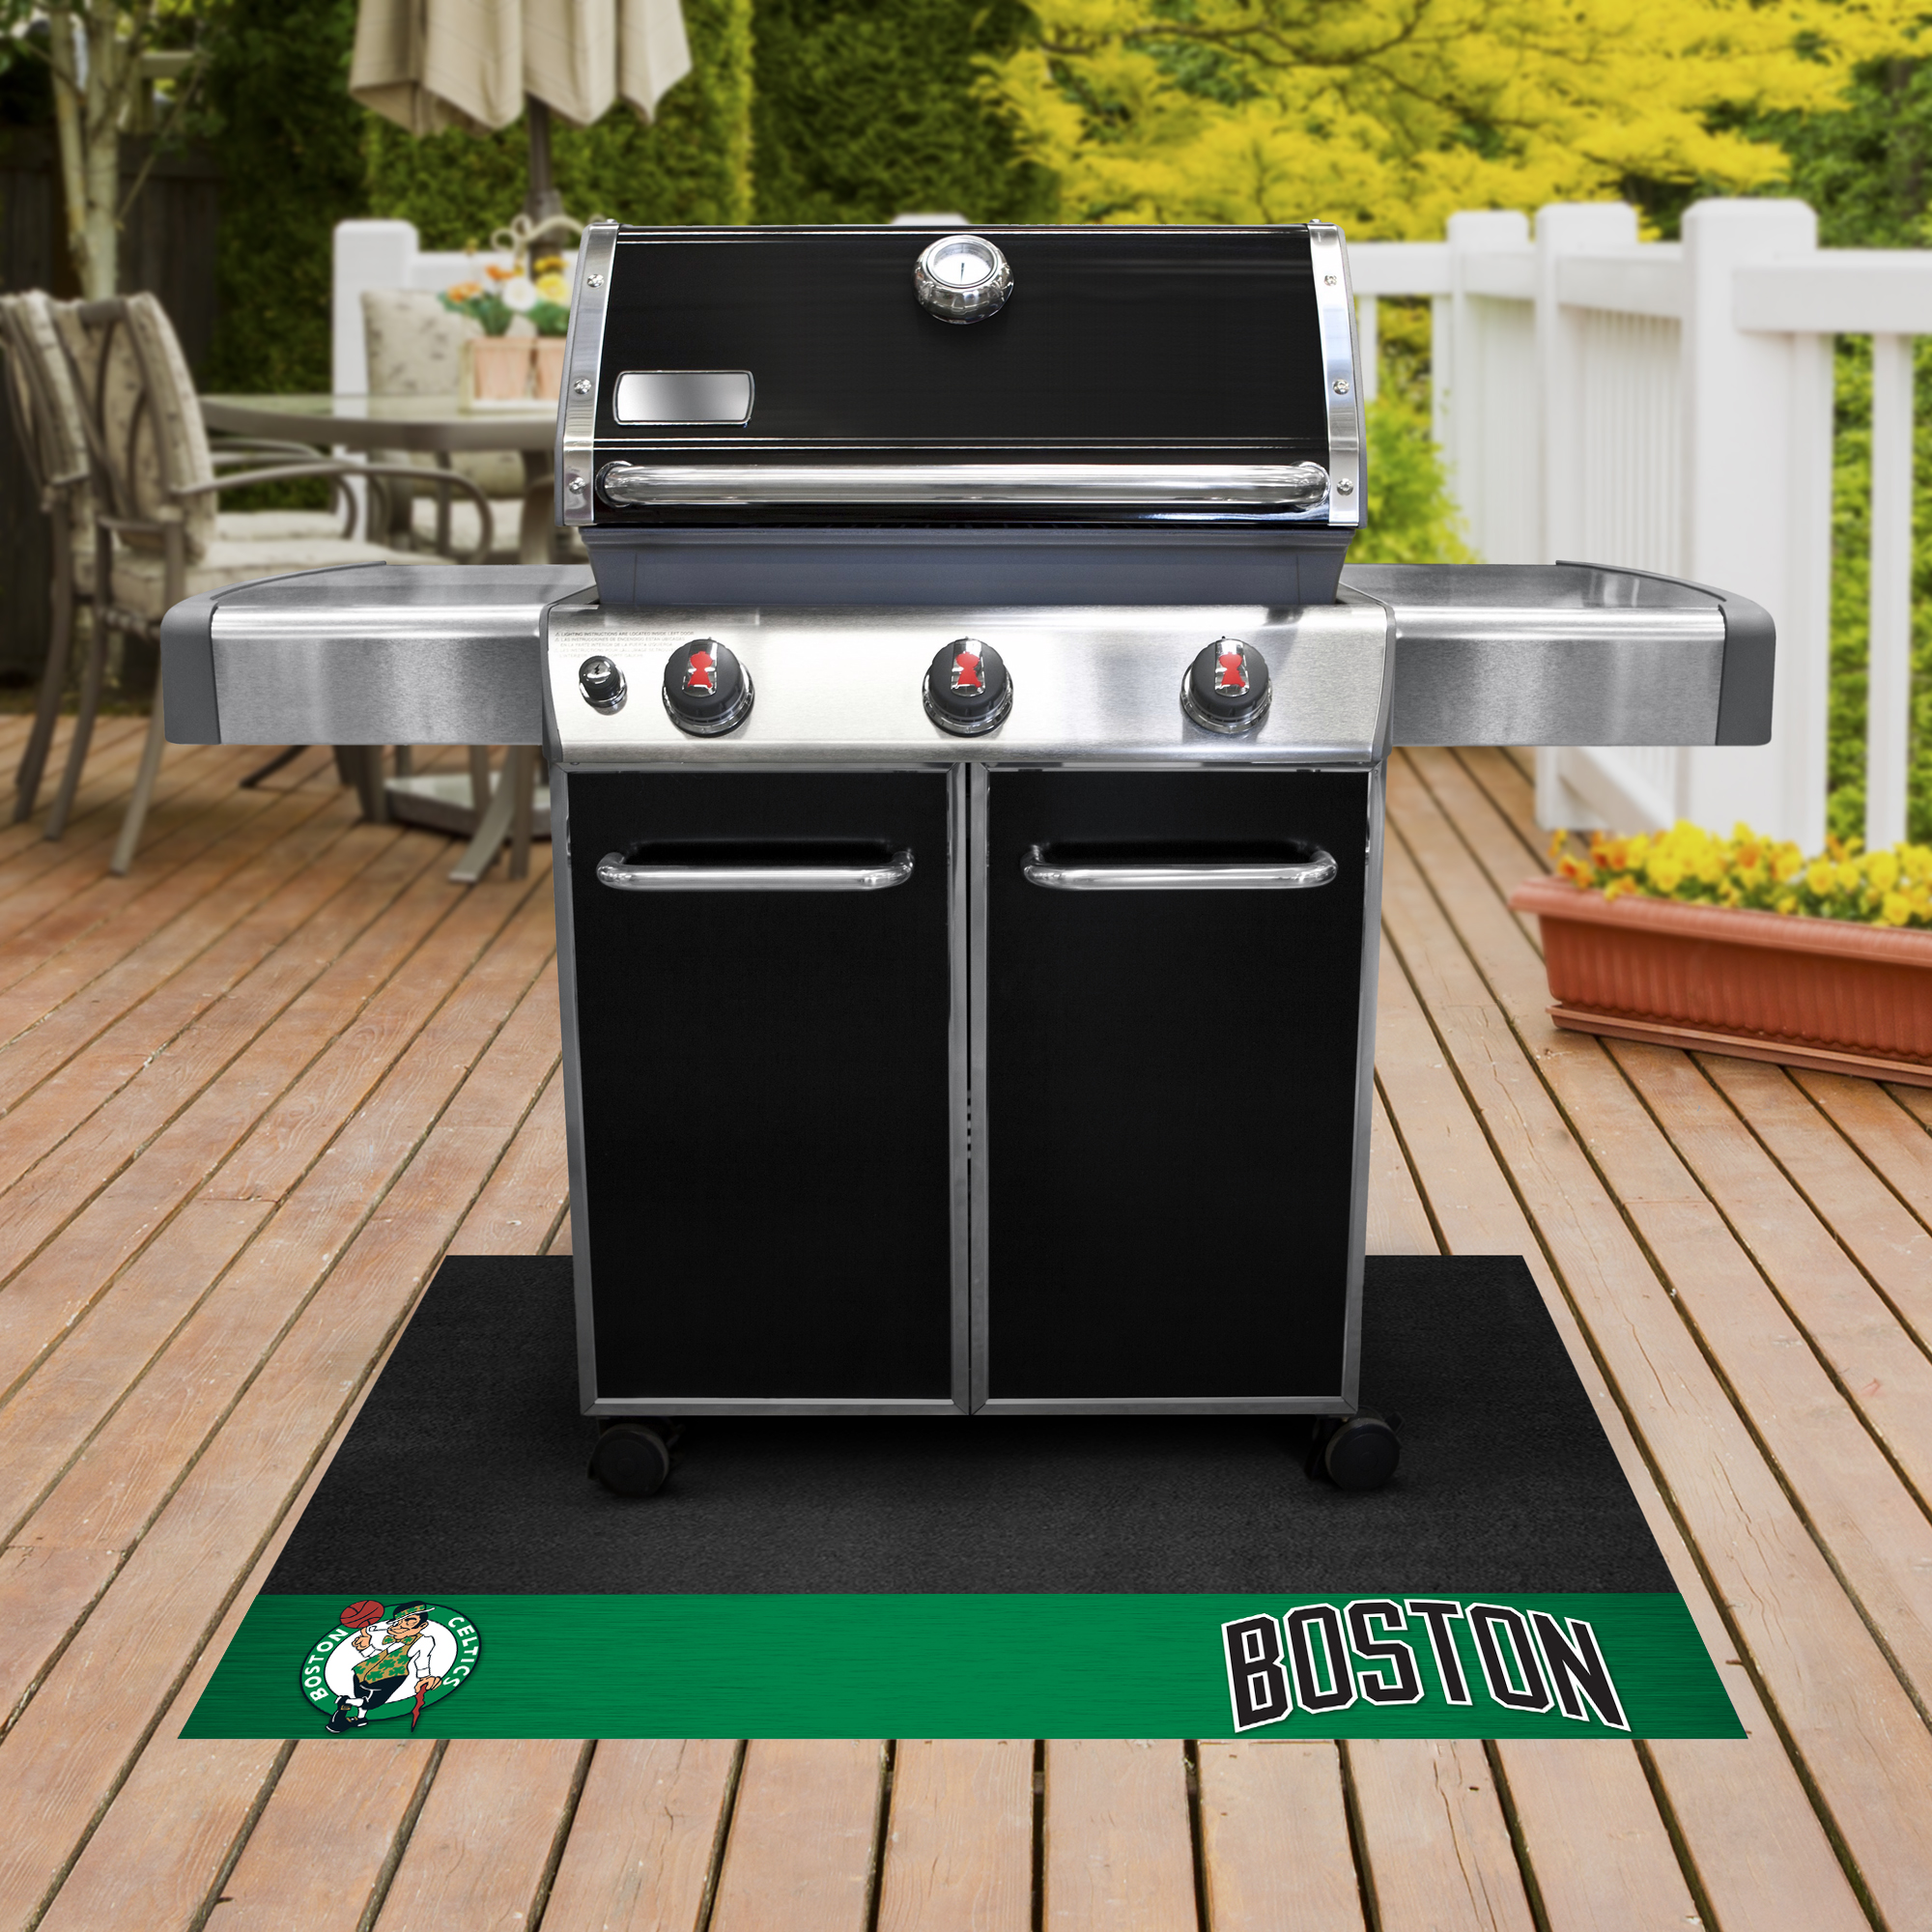 Boston Celtics NBA Grill Mat